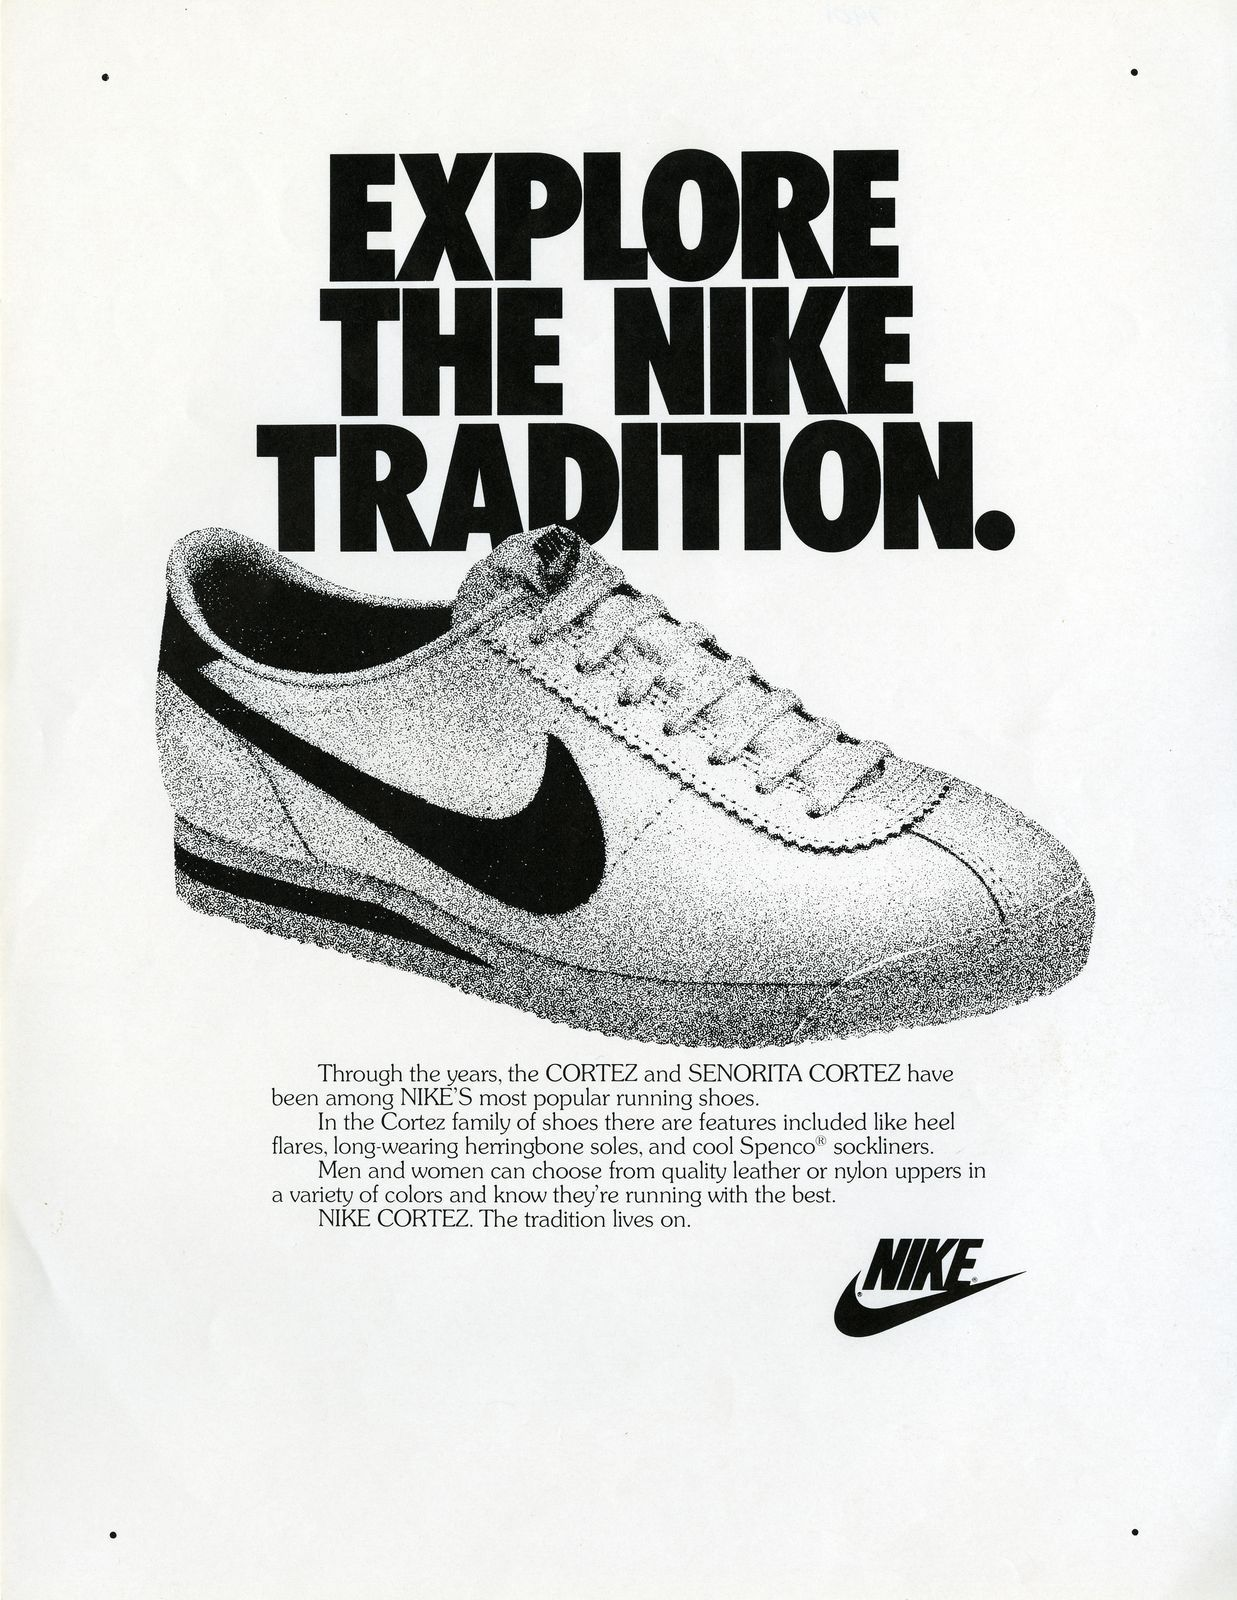 check out 2f9e9 f914a The Nike Cortez is as much a part of Los Angeles history as the film  industry, the Lakers   the Watts riots. Read more on the evolution of this  famous shoe